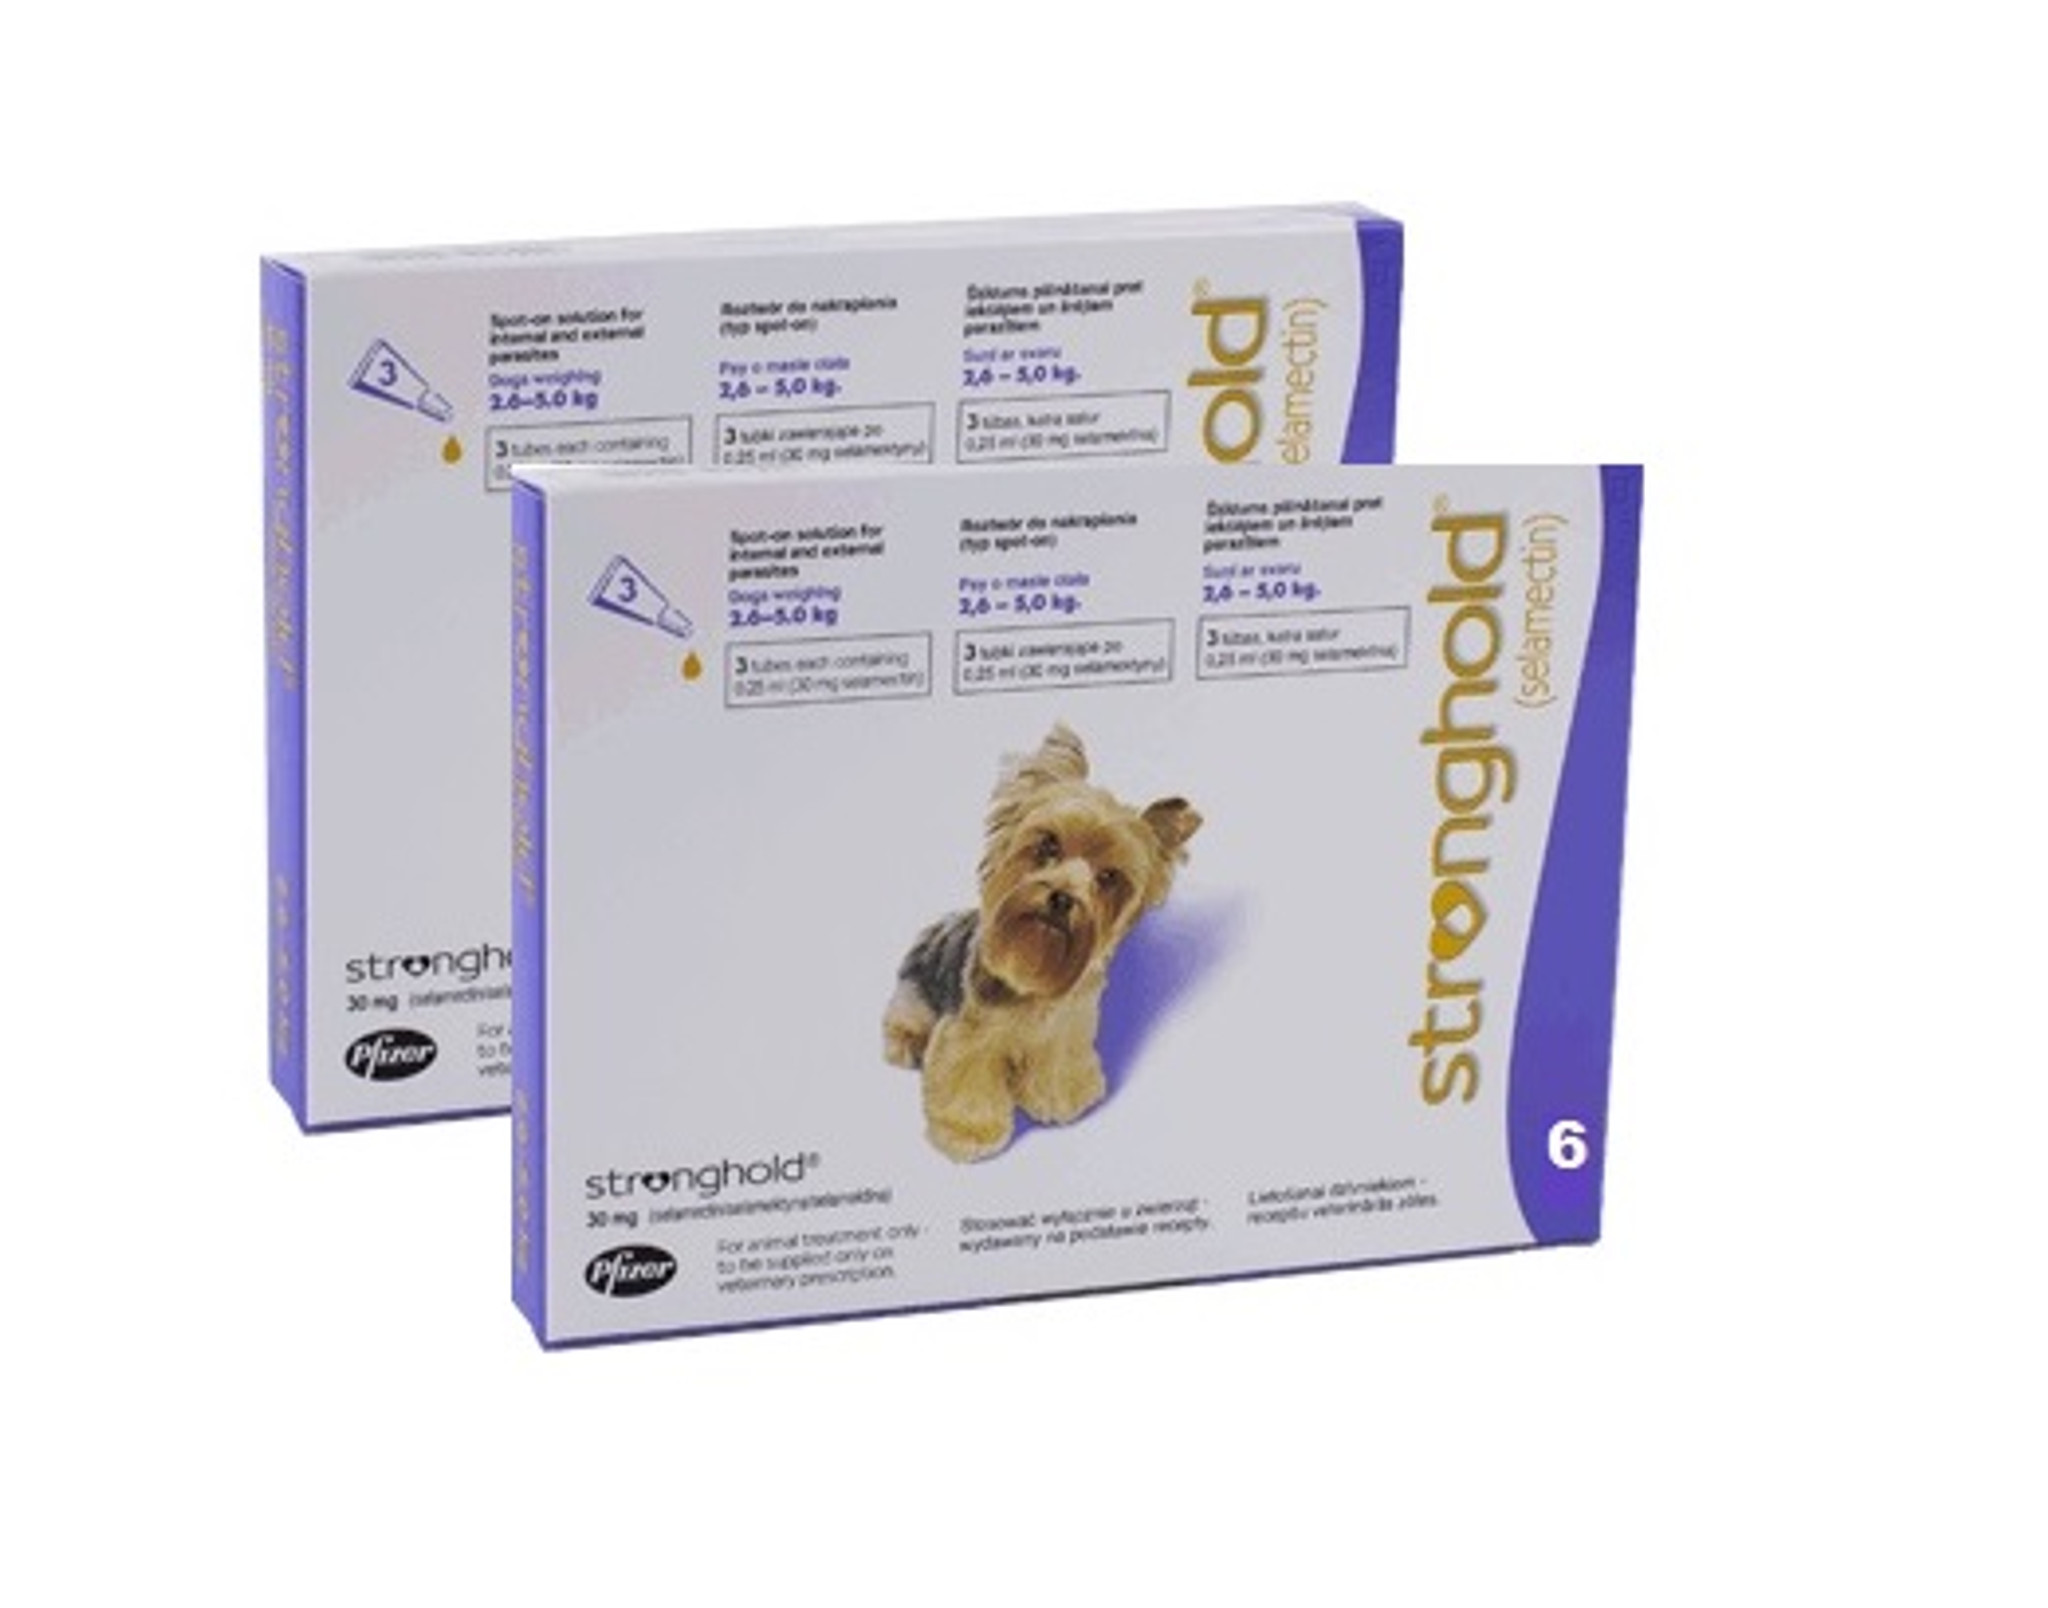 Stronghold For Dogs 5 1 10 Lbs Violet 12 Pack Sierra Pet